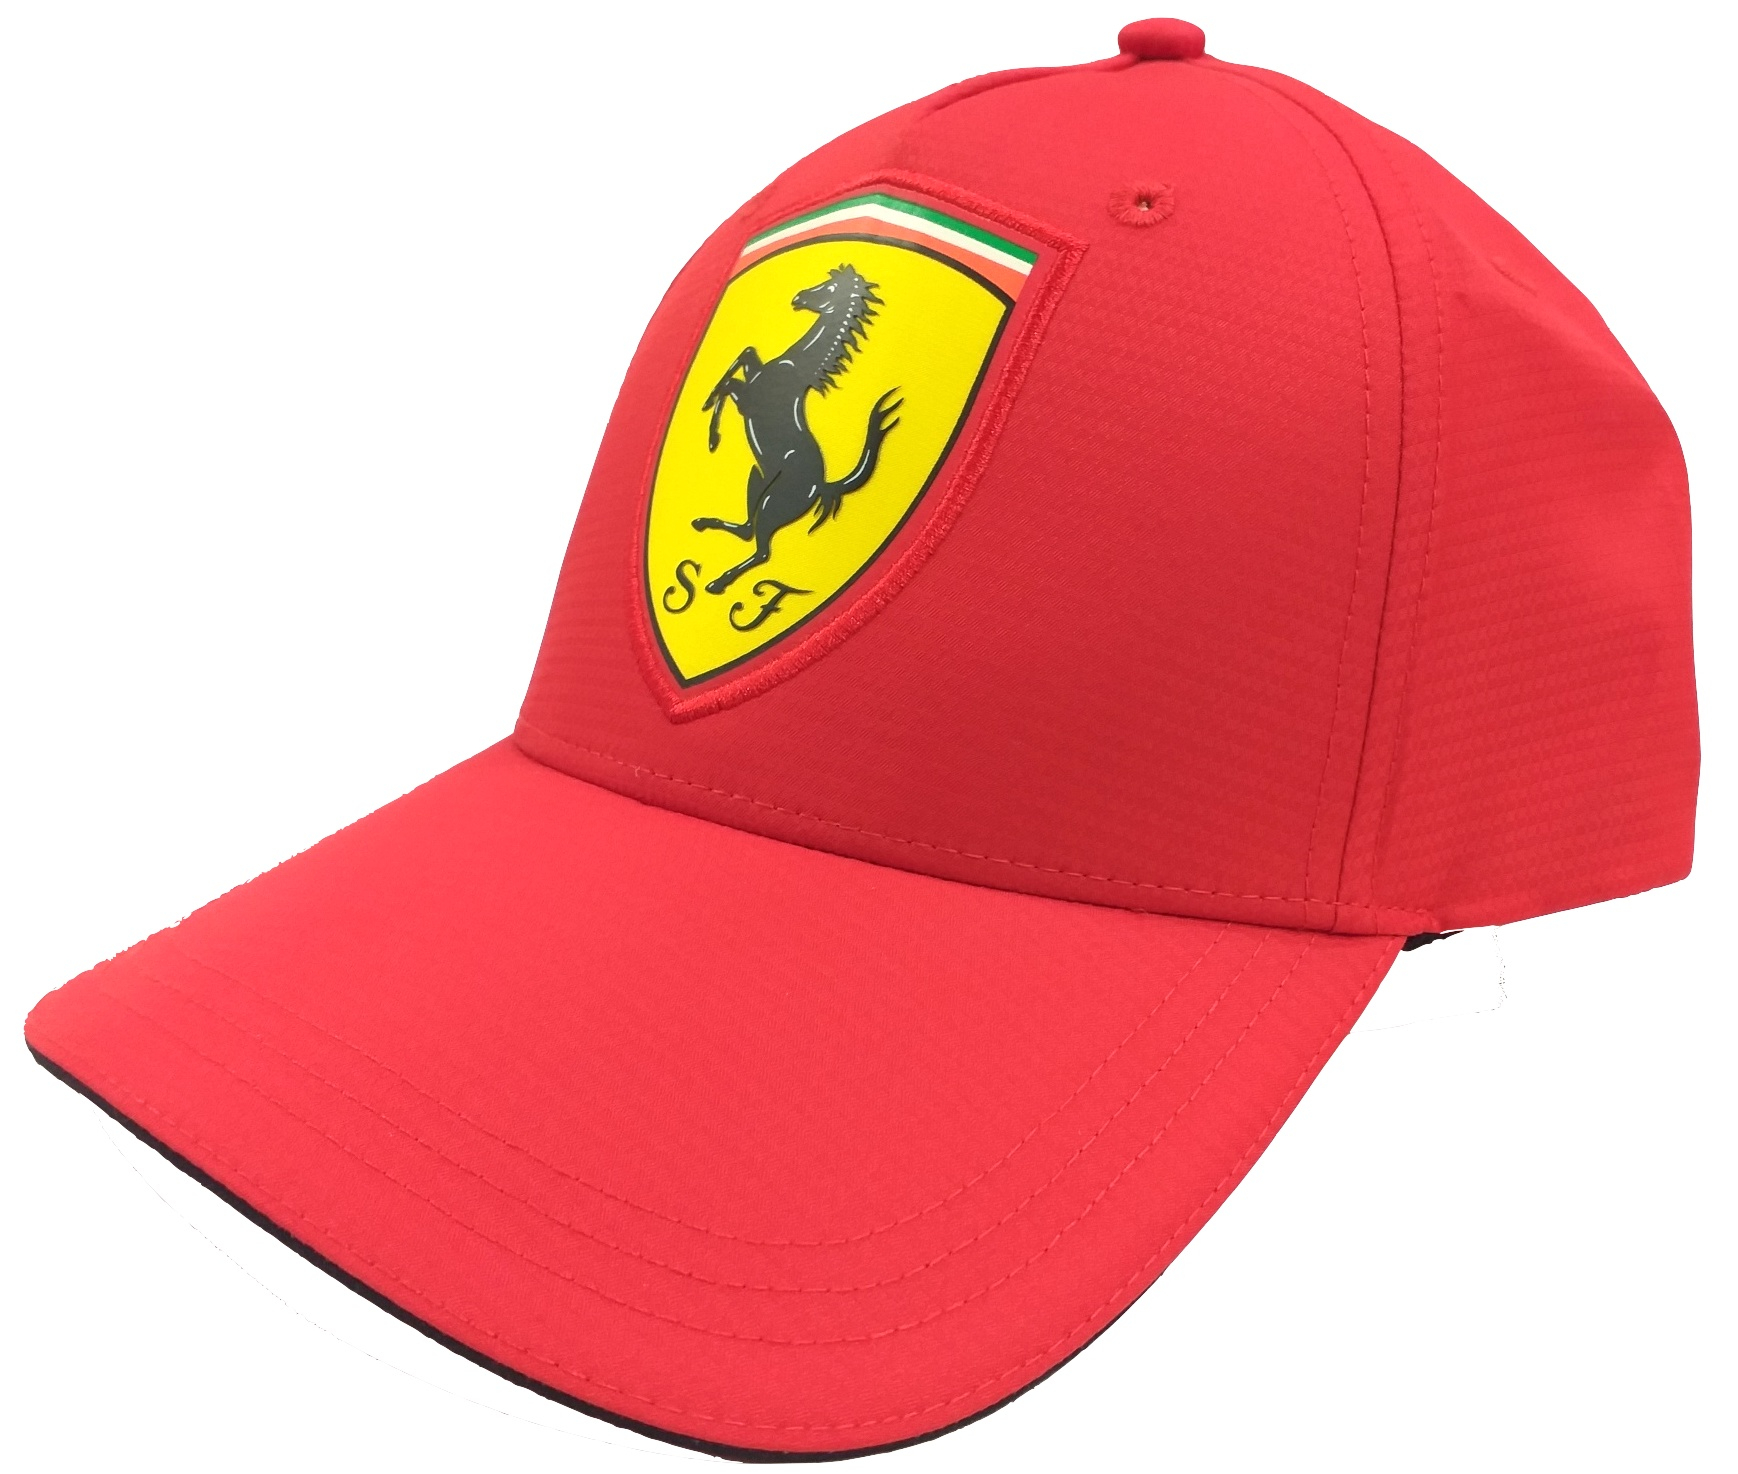 SF Scudetto Carbon Baseball Cap Red